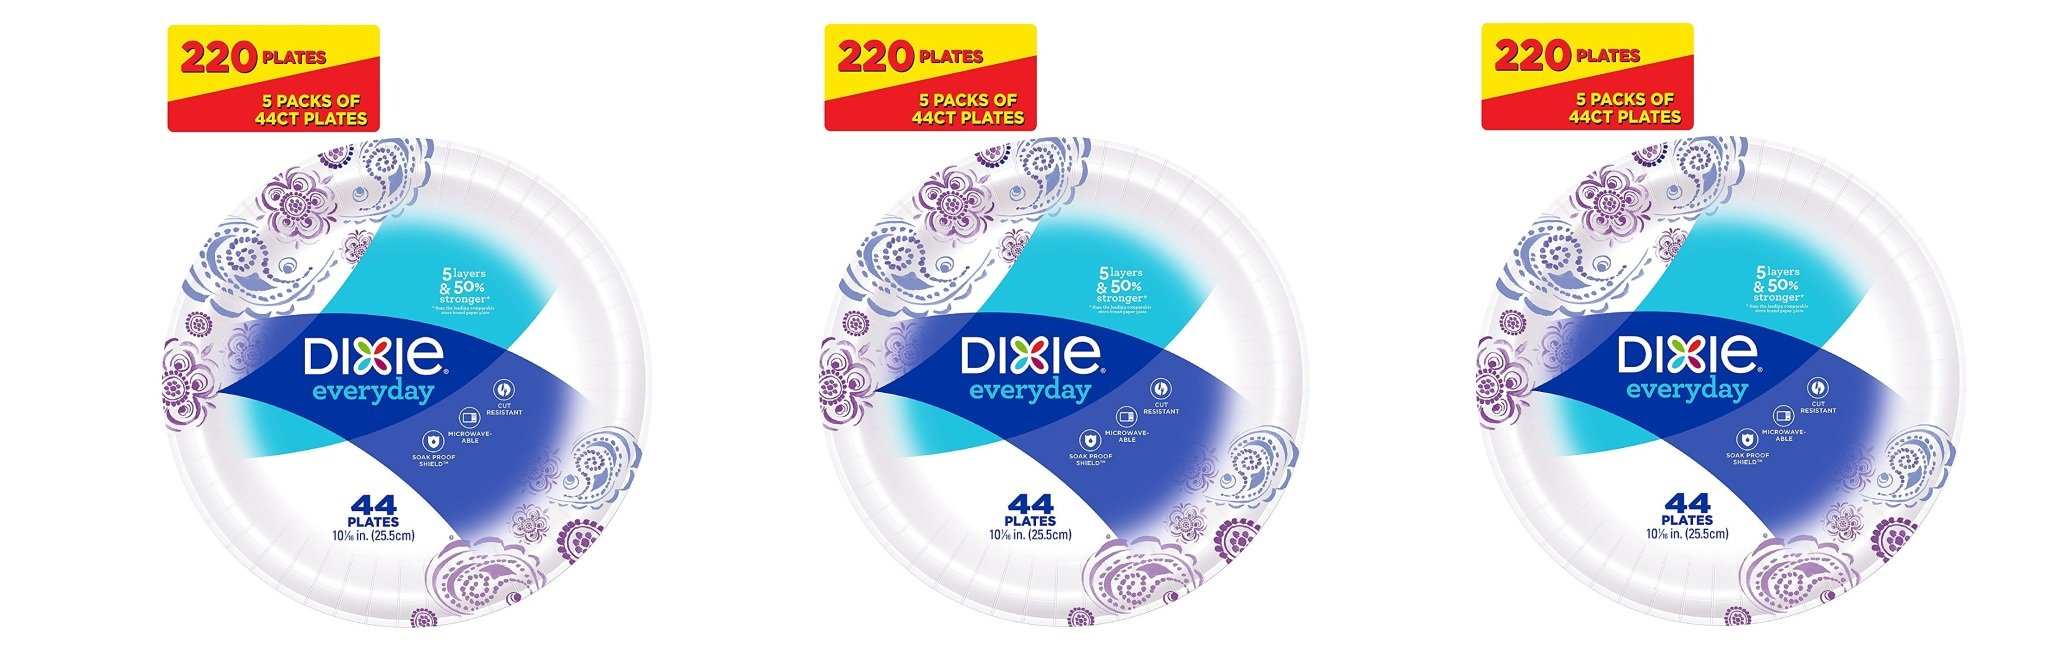 Dixie Everyday Paper Plates, 10 1/16 Inches kNWoLG, 3Pack of 220 Plates by DIXIE